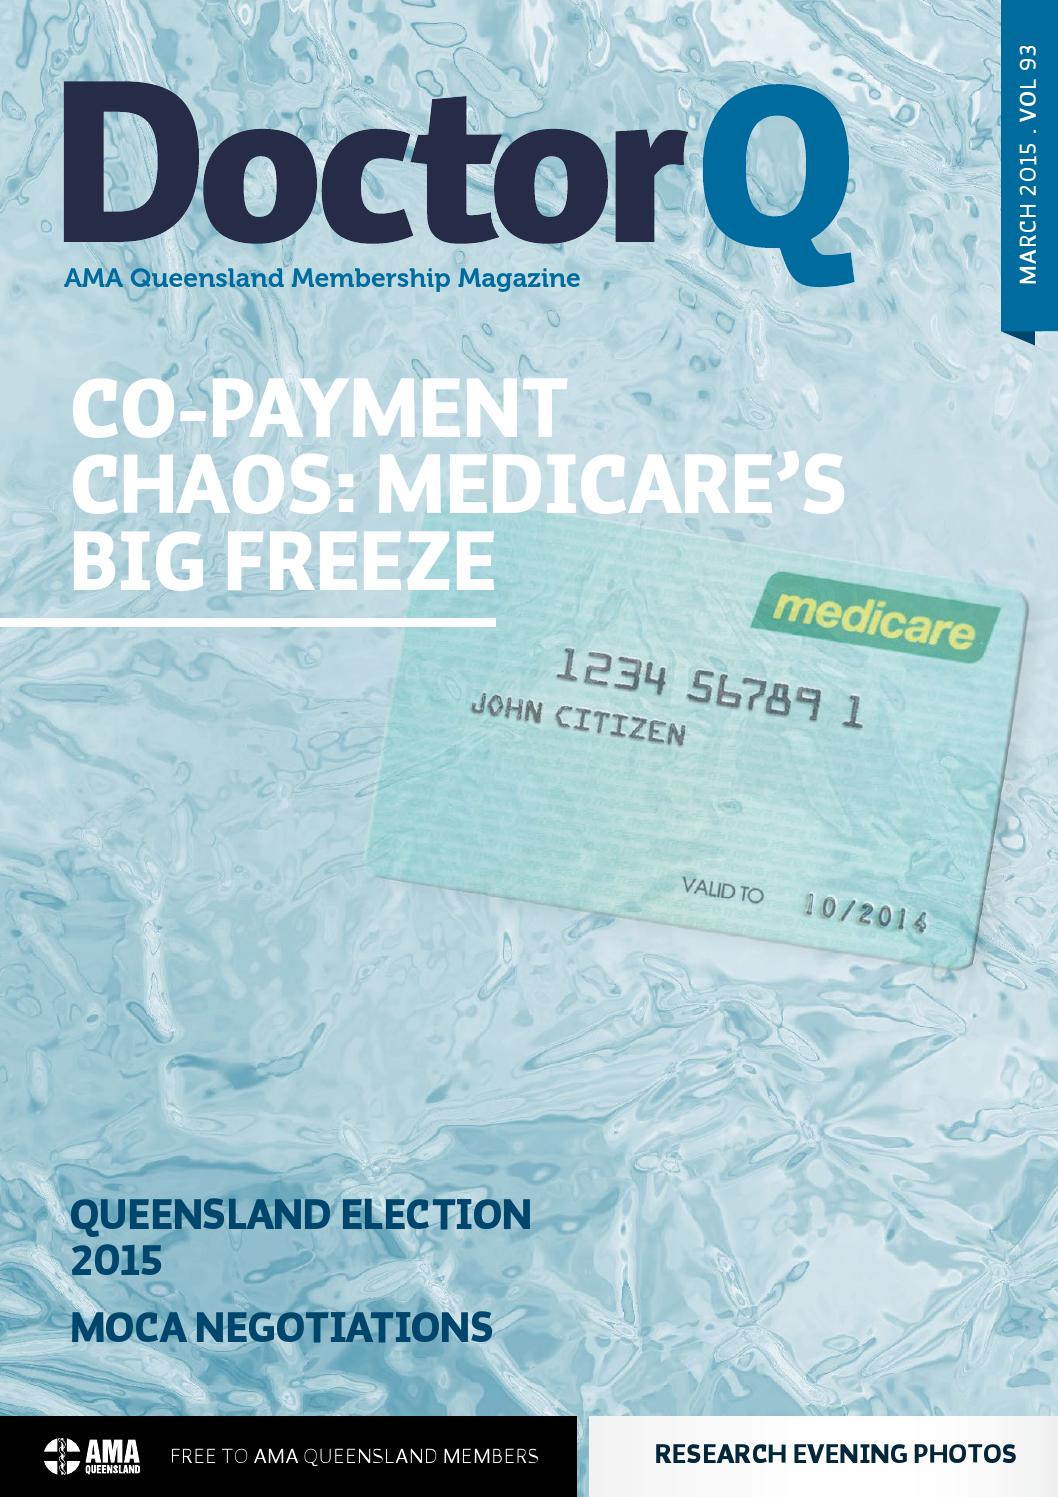 Doctor Q March 2015 by AMA Queensland - issuu